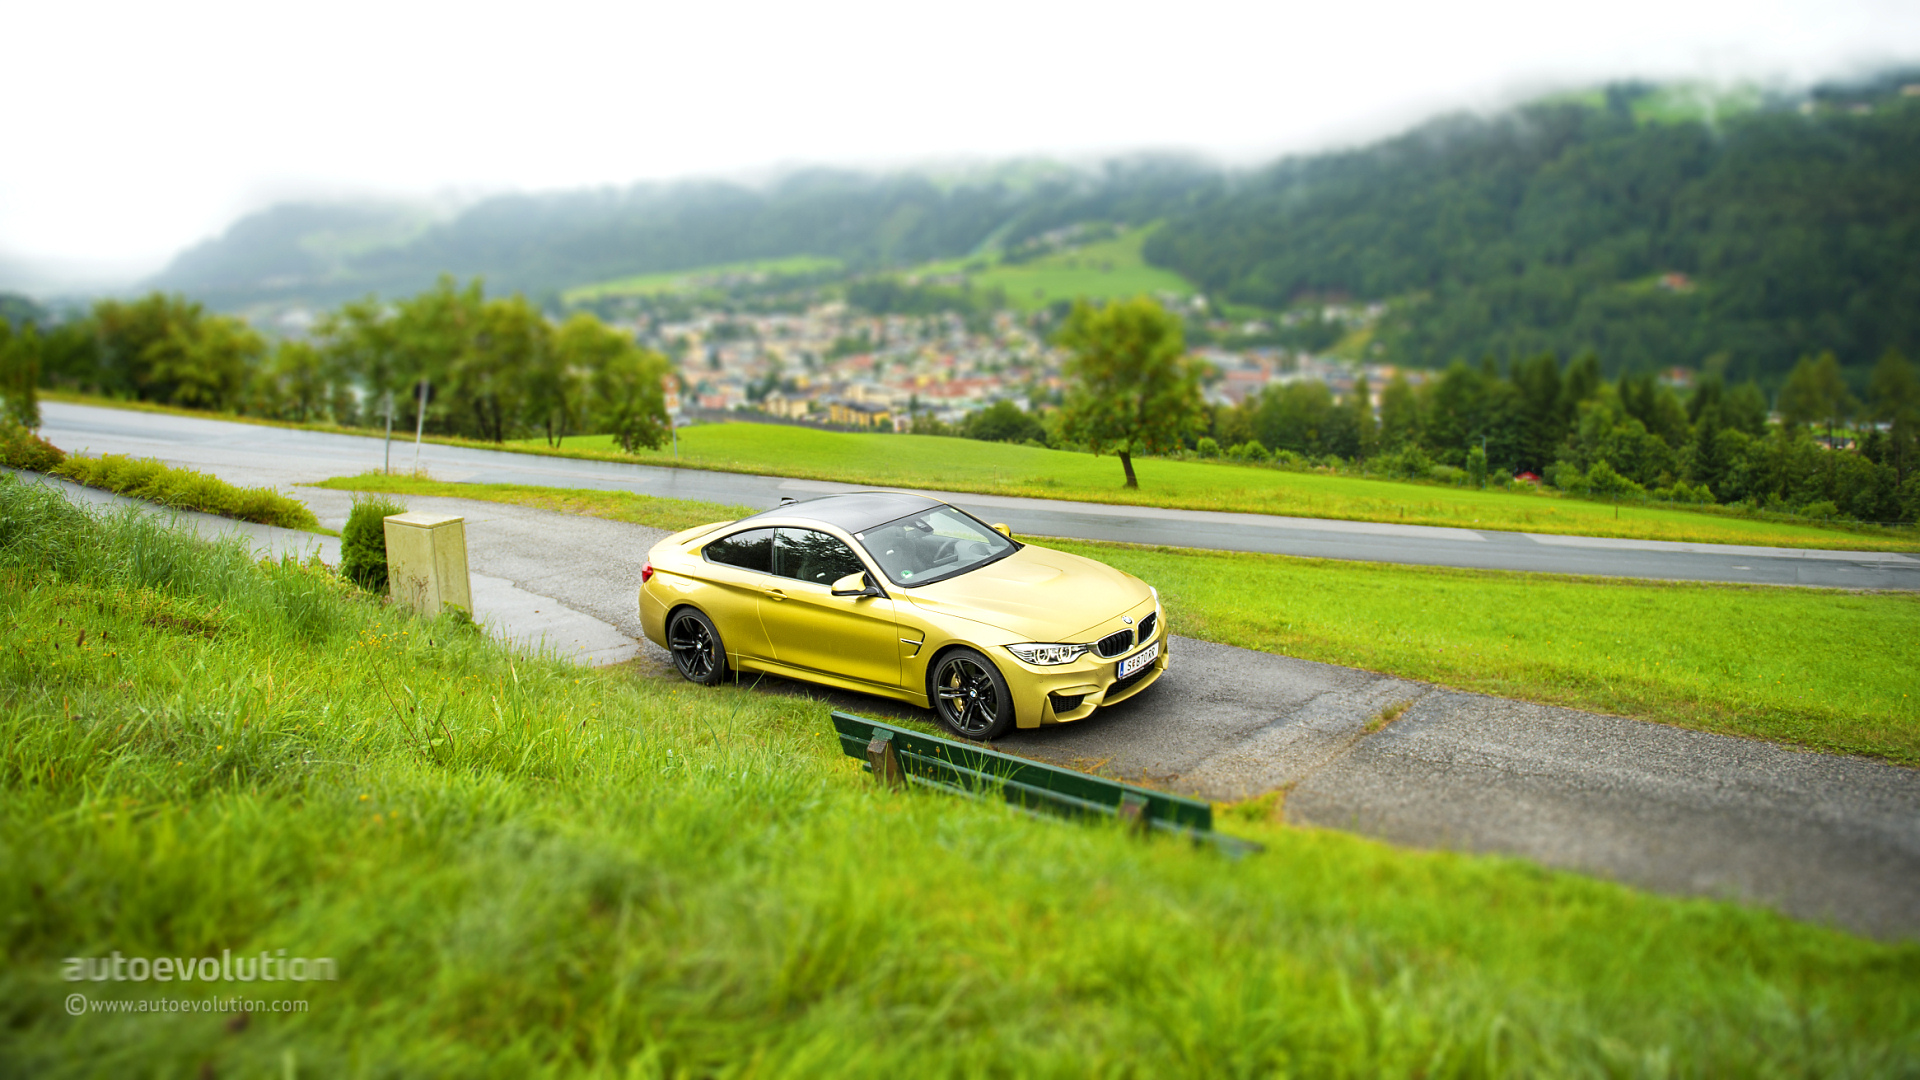 2015 bmw m4 hd wallpapers - autoevolution